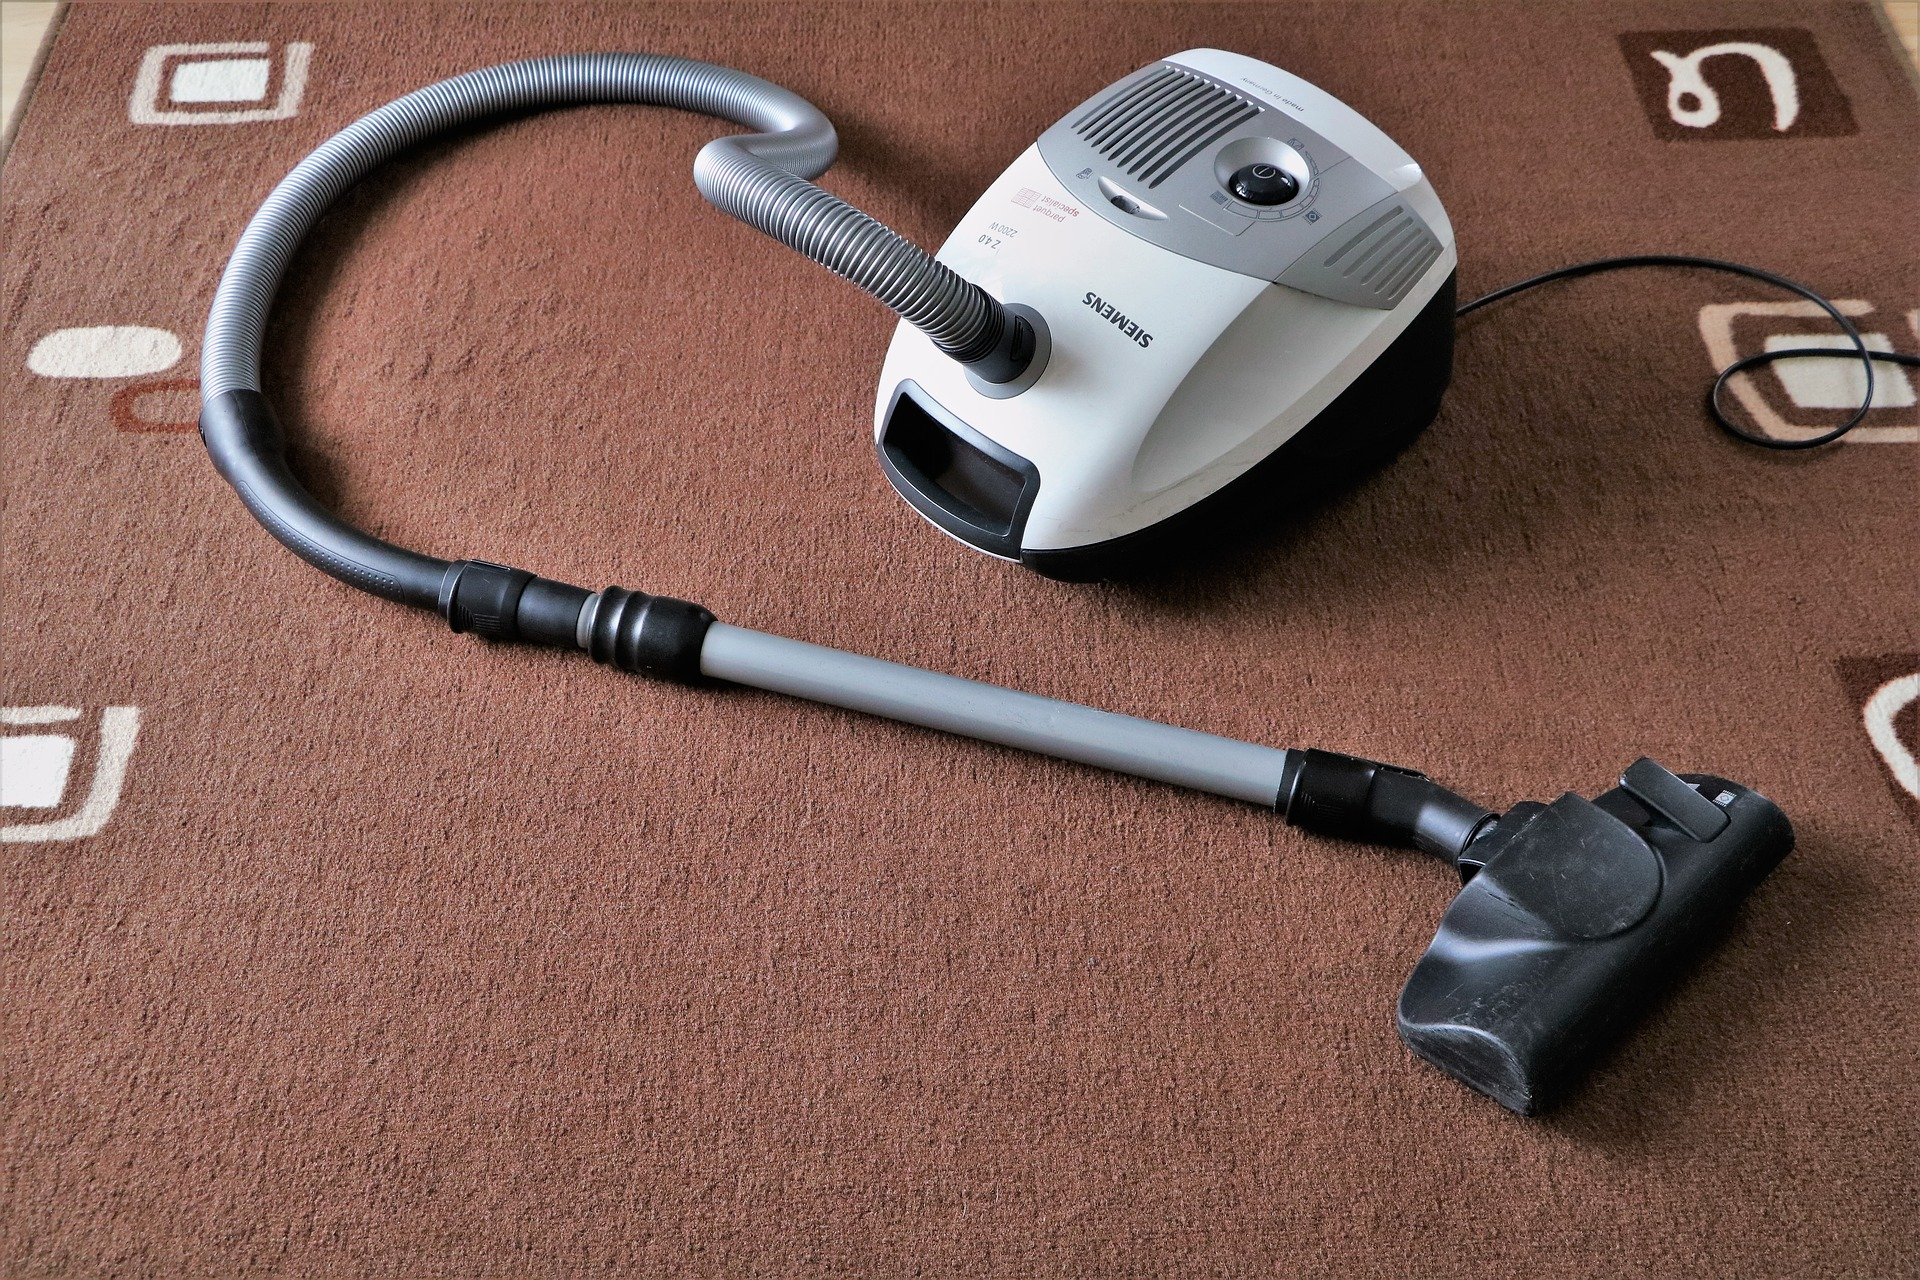 Save Your Carpet With These Great Carpet Cleaning Tips